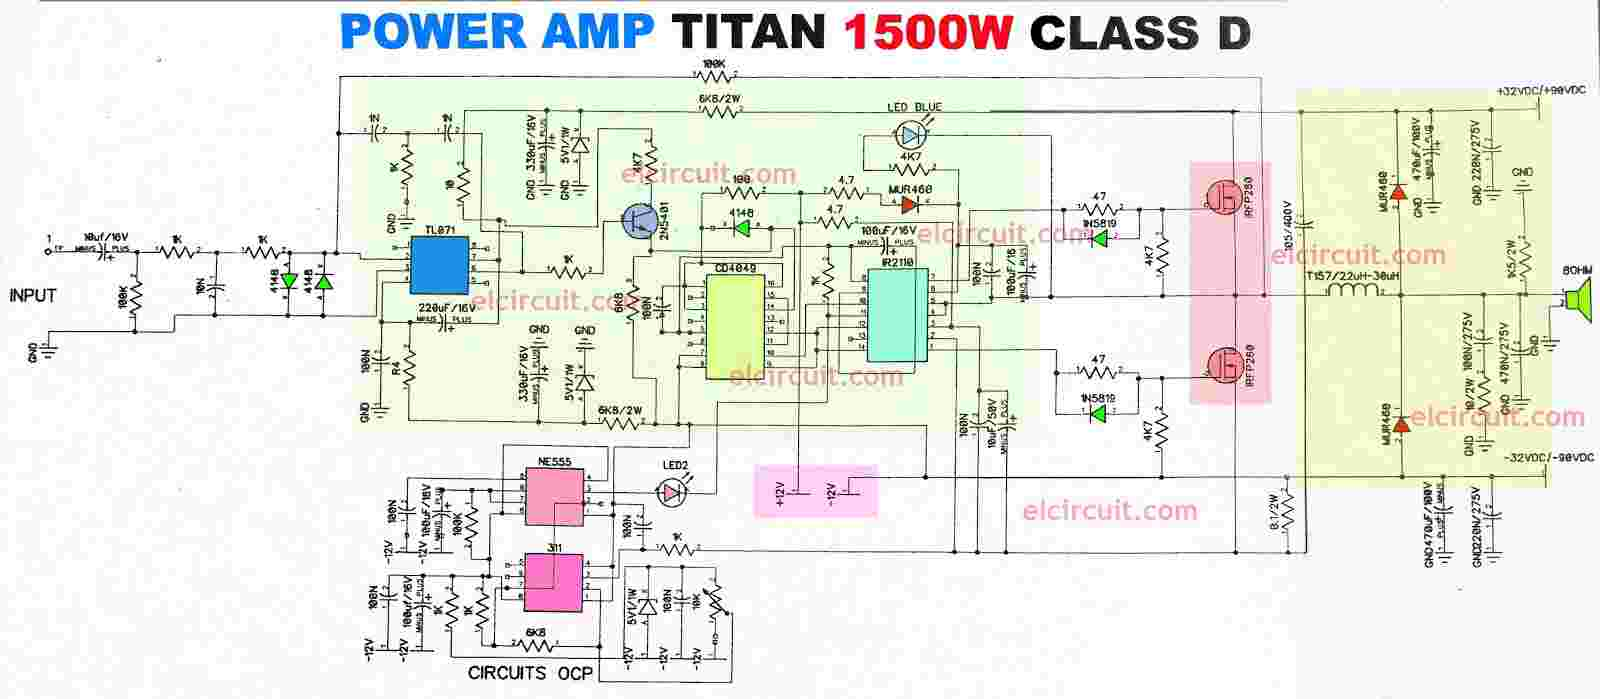 Power Amplifier 1500W Class D IR2110 CD4049 - Electronic Circuit